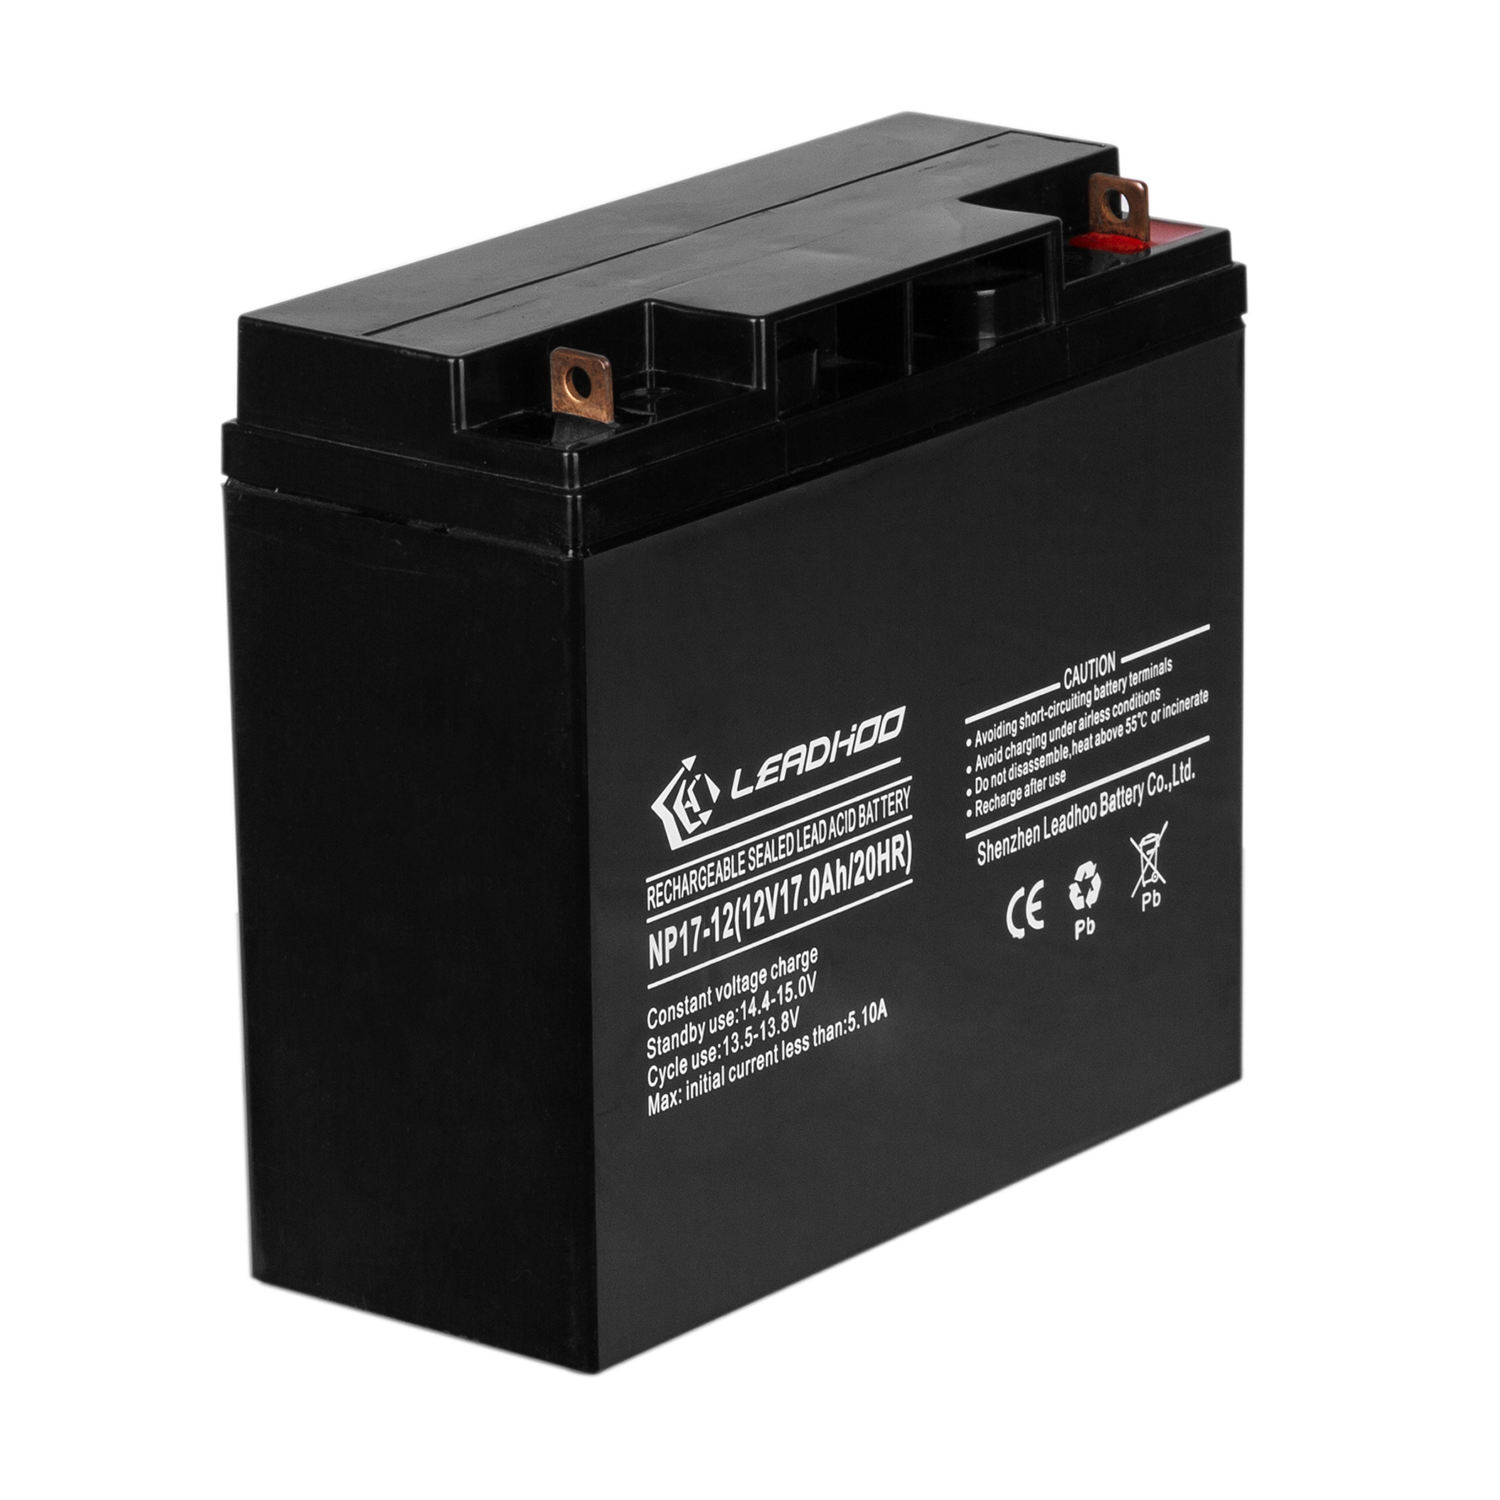 ready to ship 12v rechargeable 12v 17ah 20hr solar deep cycle sealed battery